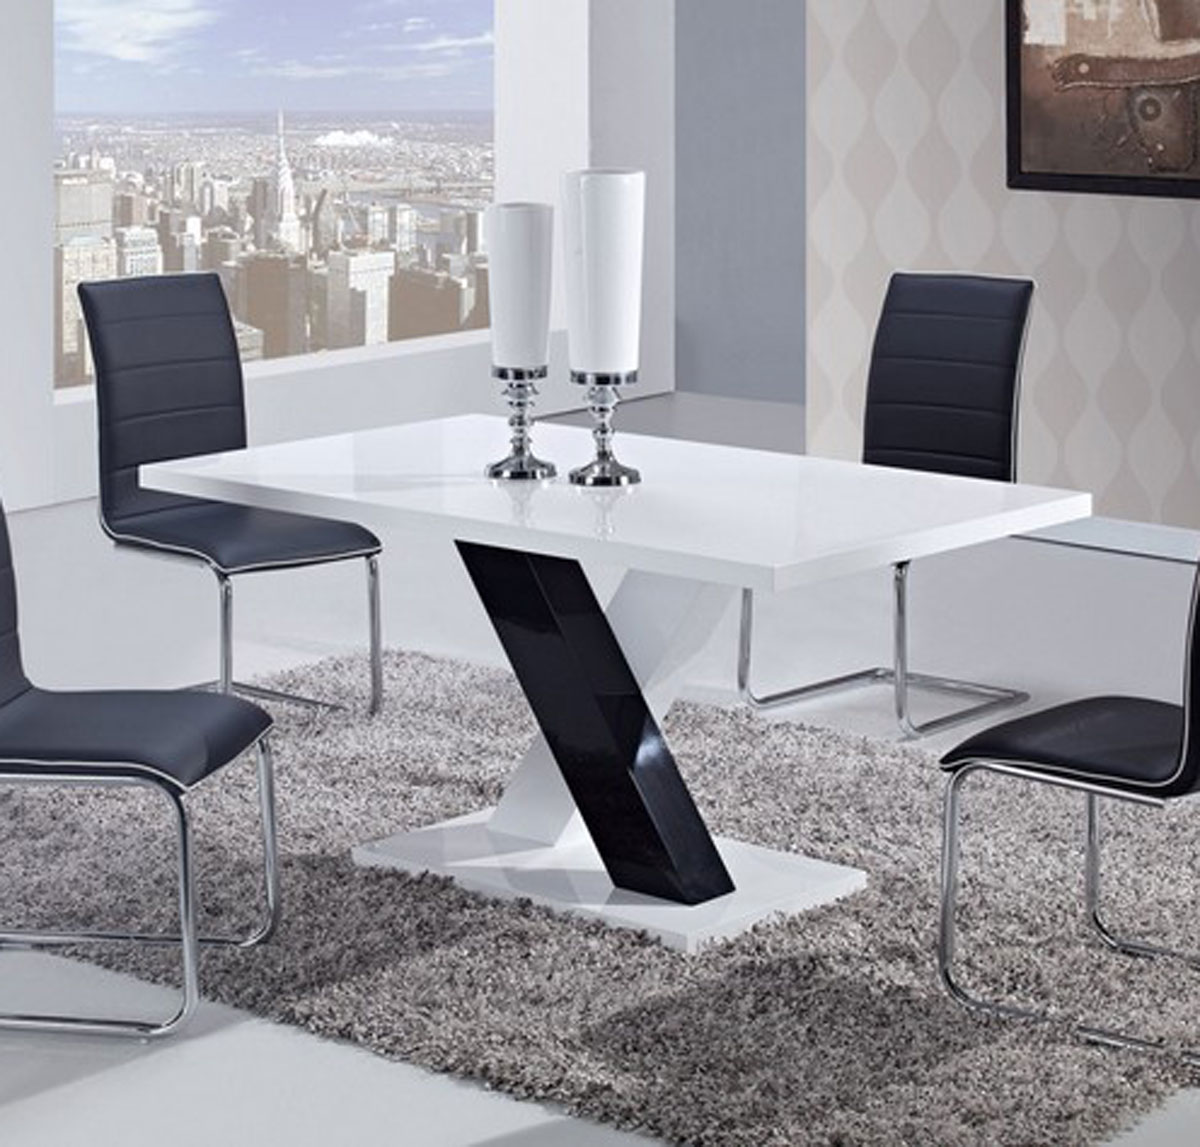 Global furniture usa 490 dining set white high gloss mdf for Black and white dining set